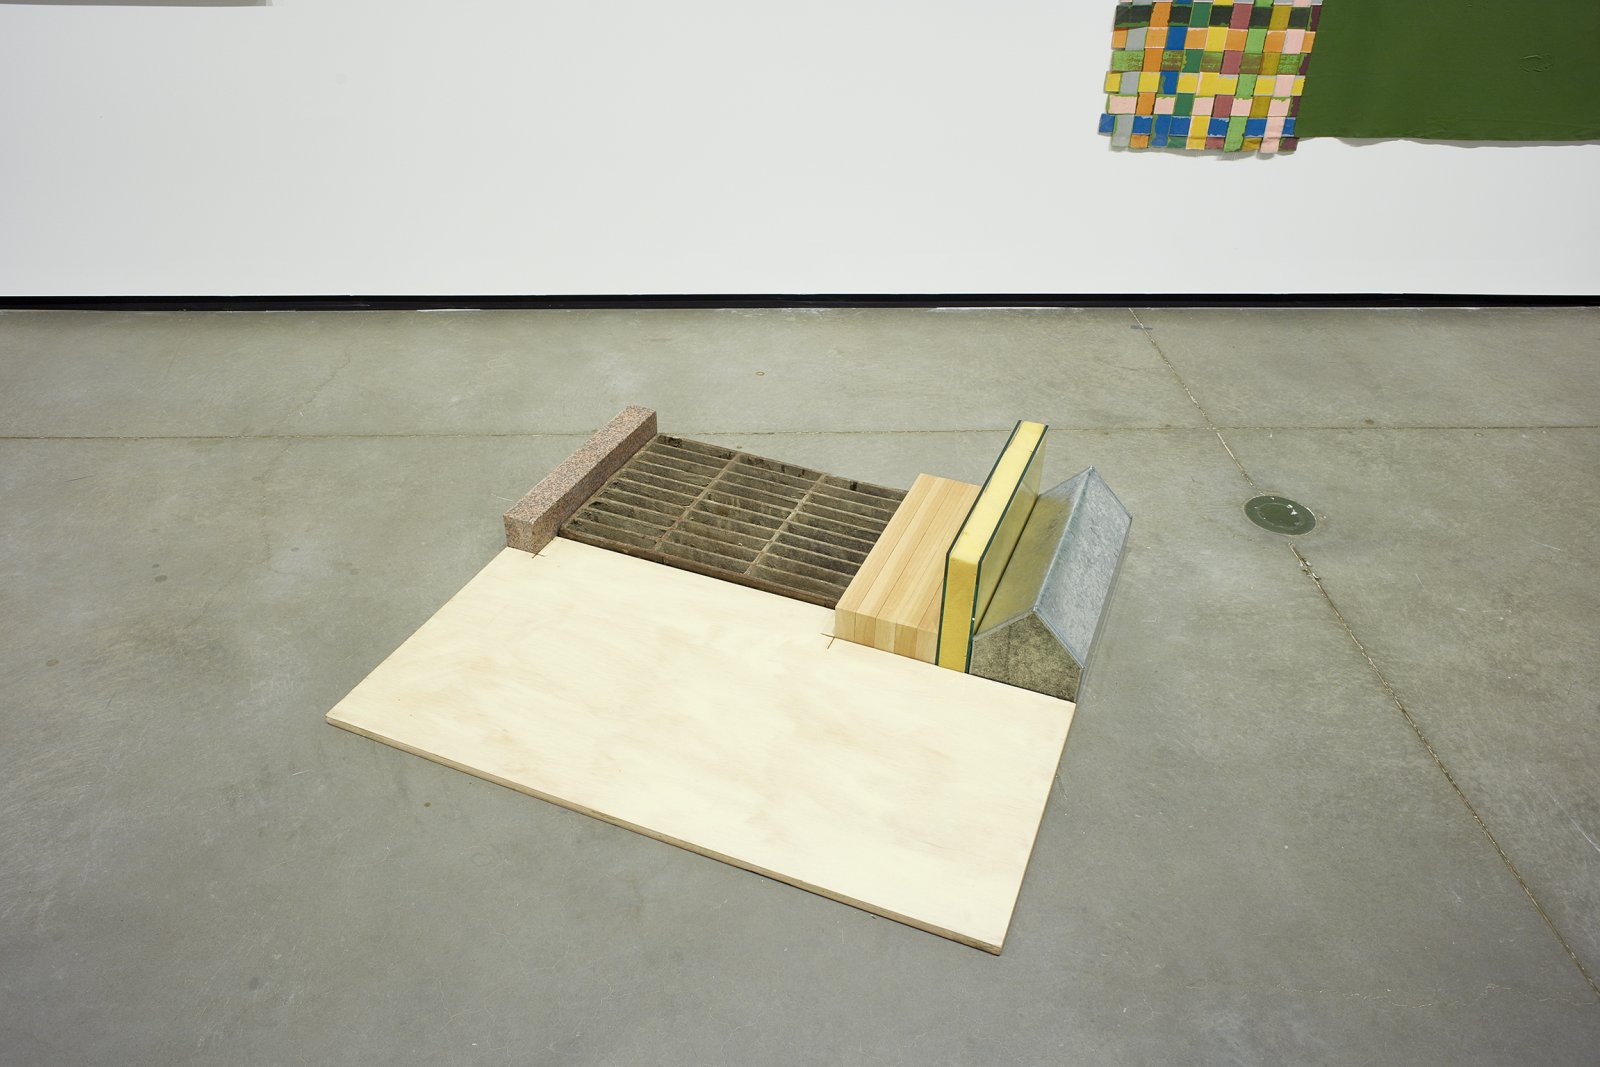 Ron Moppett, Range, 1978, plywood, marble, iron grill, wood, glass, sheet foam, tin, 10 x 40 x 45 in. (25 x 102 x 114 cm). Installation view, Every Story Has Two Sides, Art Gallery of Alberta, Edmonton, 2016 by Damian Moppett